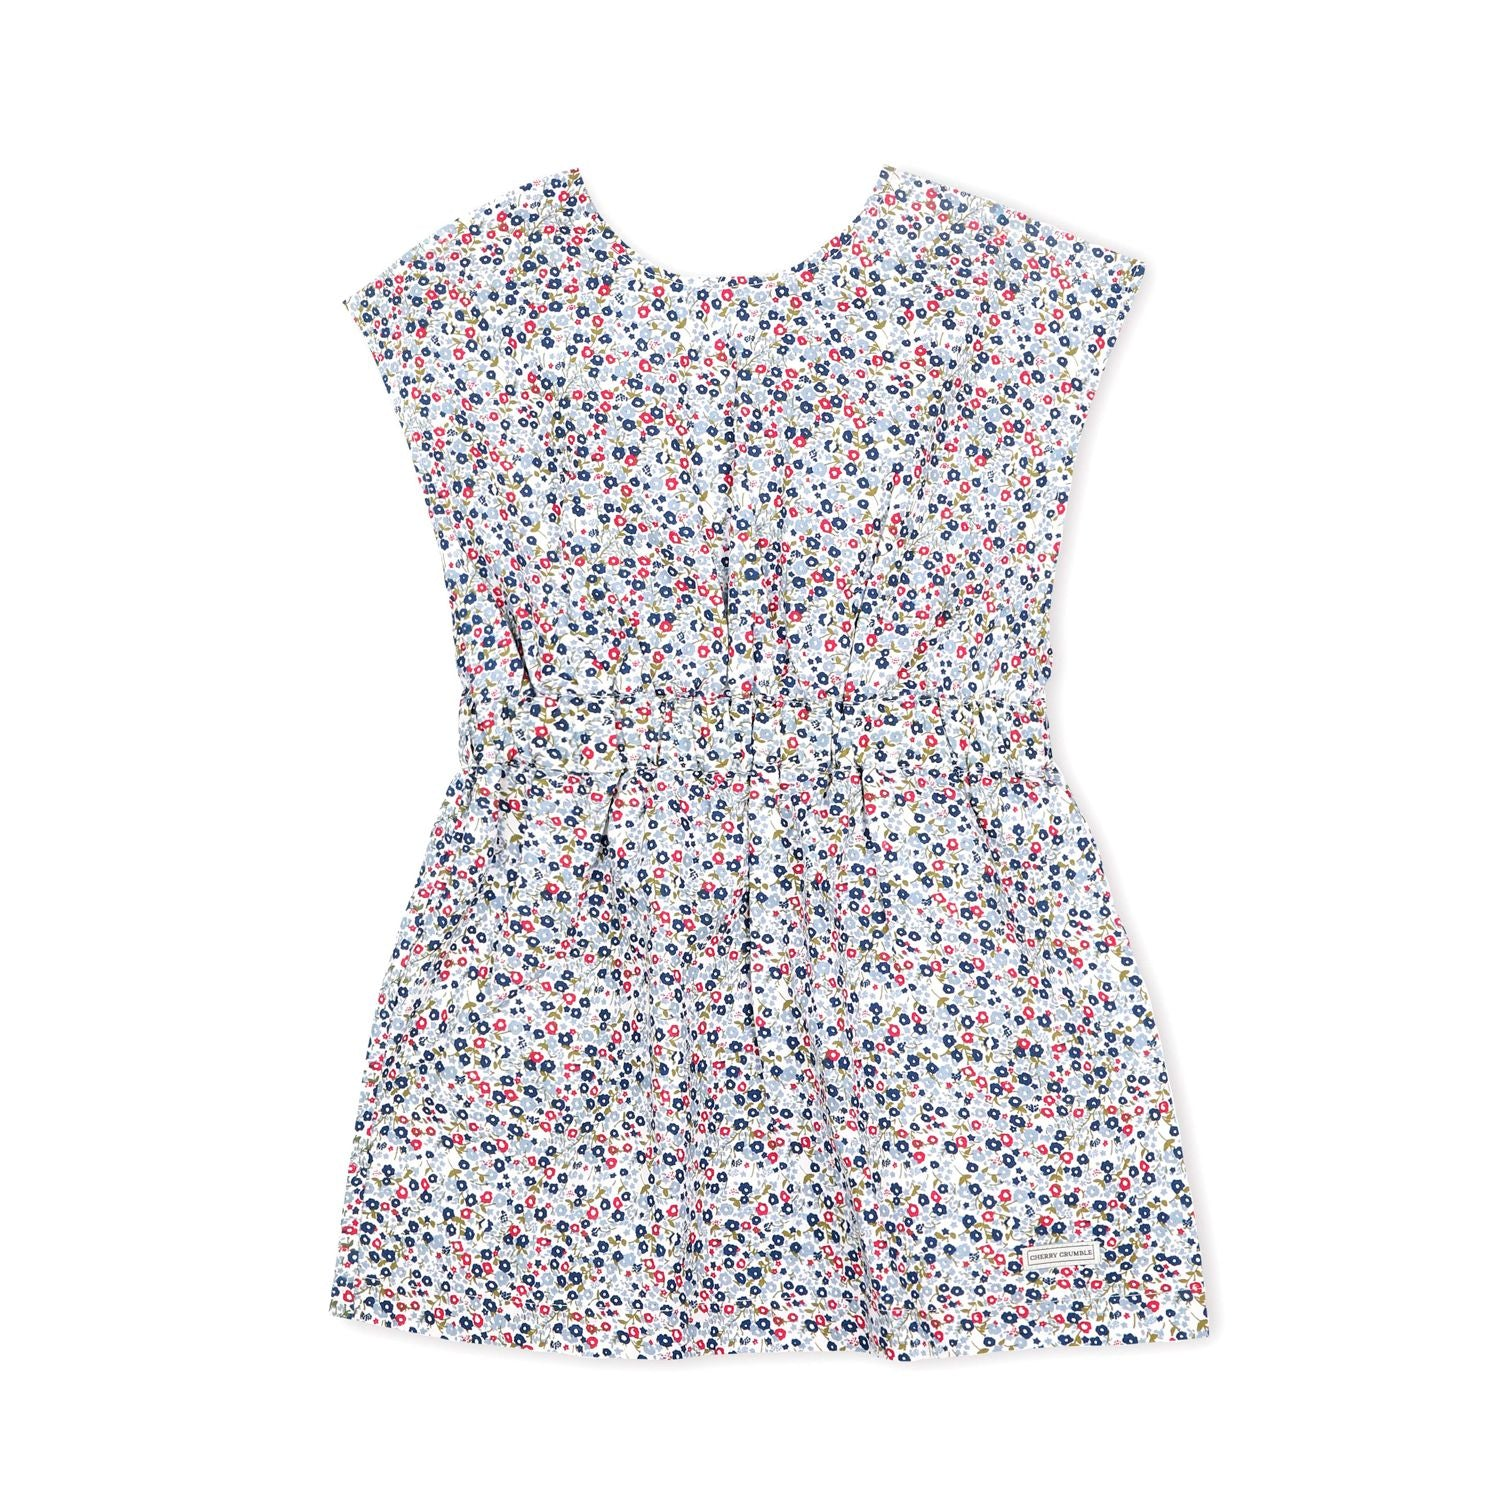 Bio Washed Cotton Floral Print Dress for Girls